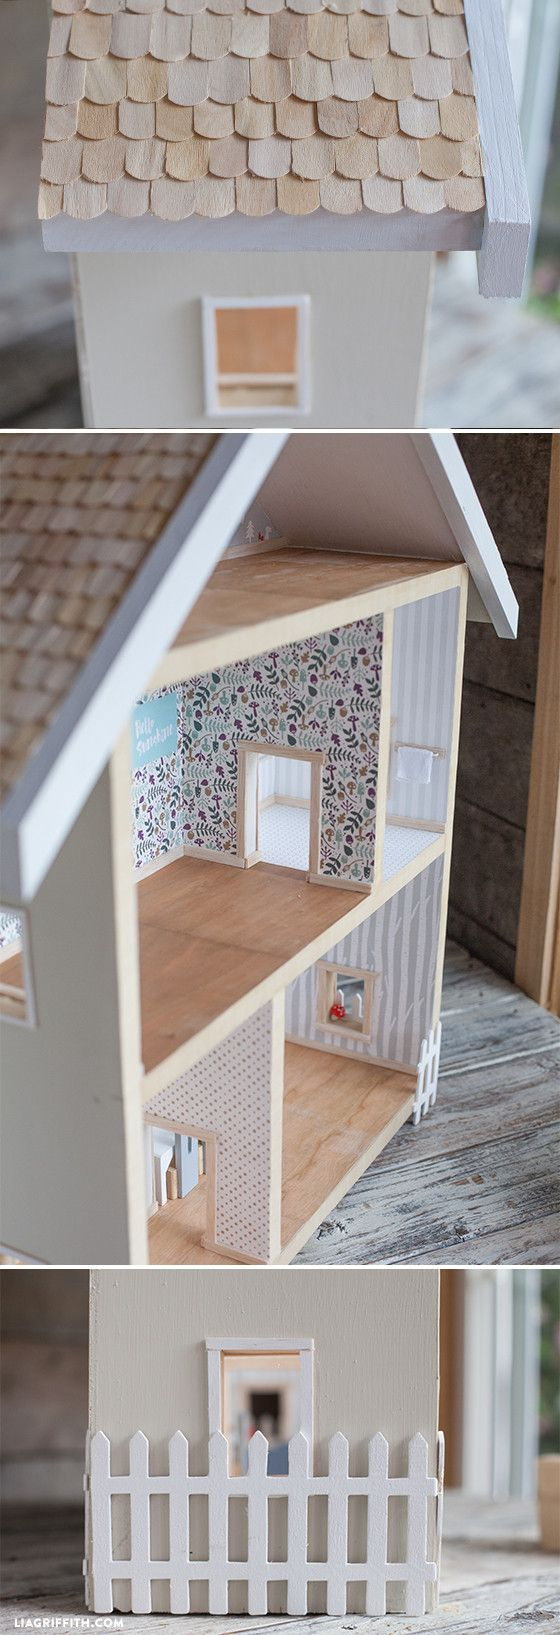 What an adorable little homemade dollhouse!